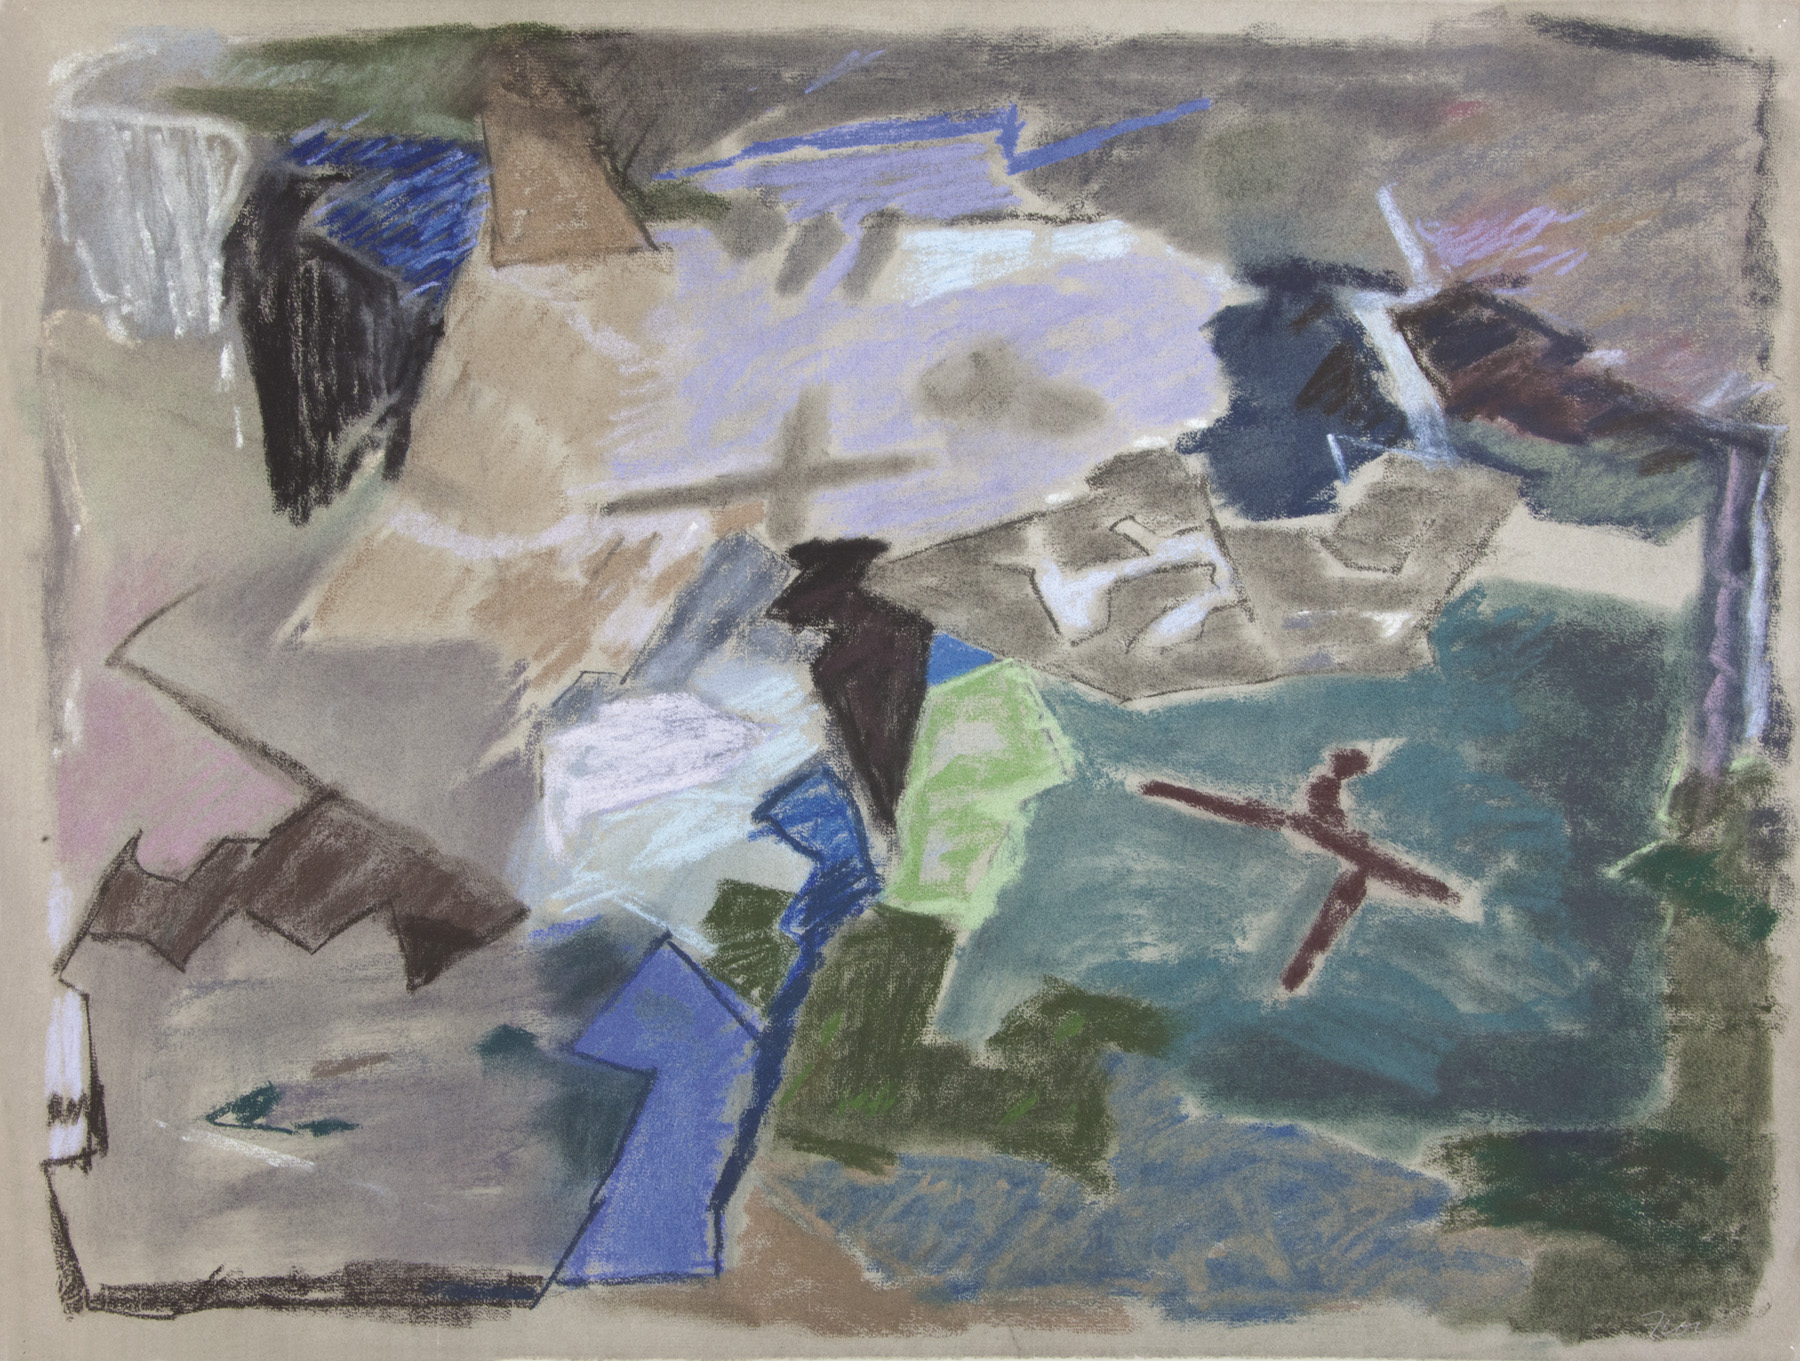 Abstract pastel work with floating shapes in blue, black, green, brown, purple